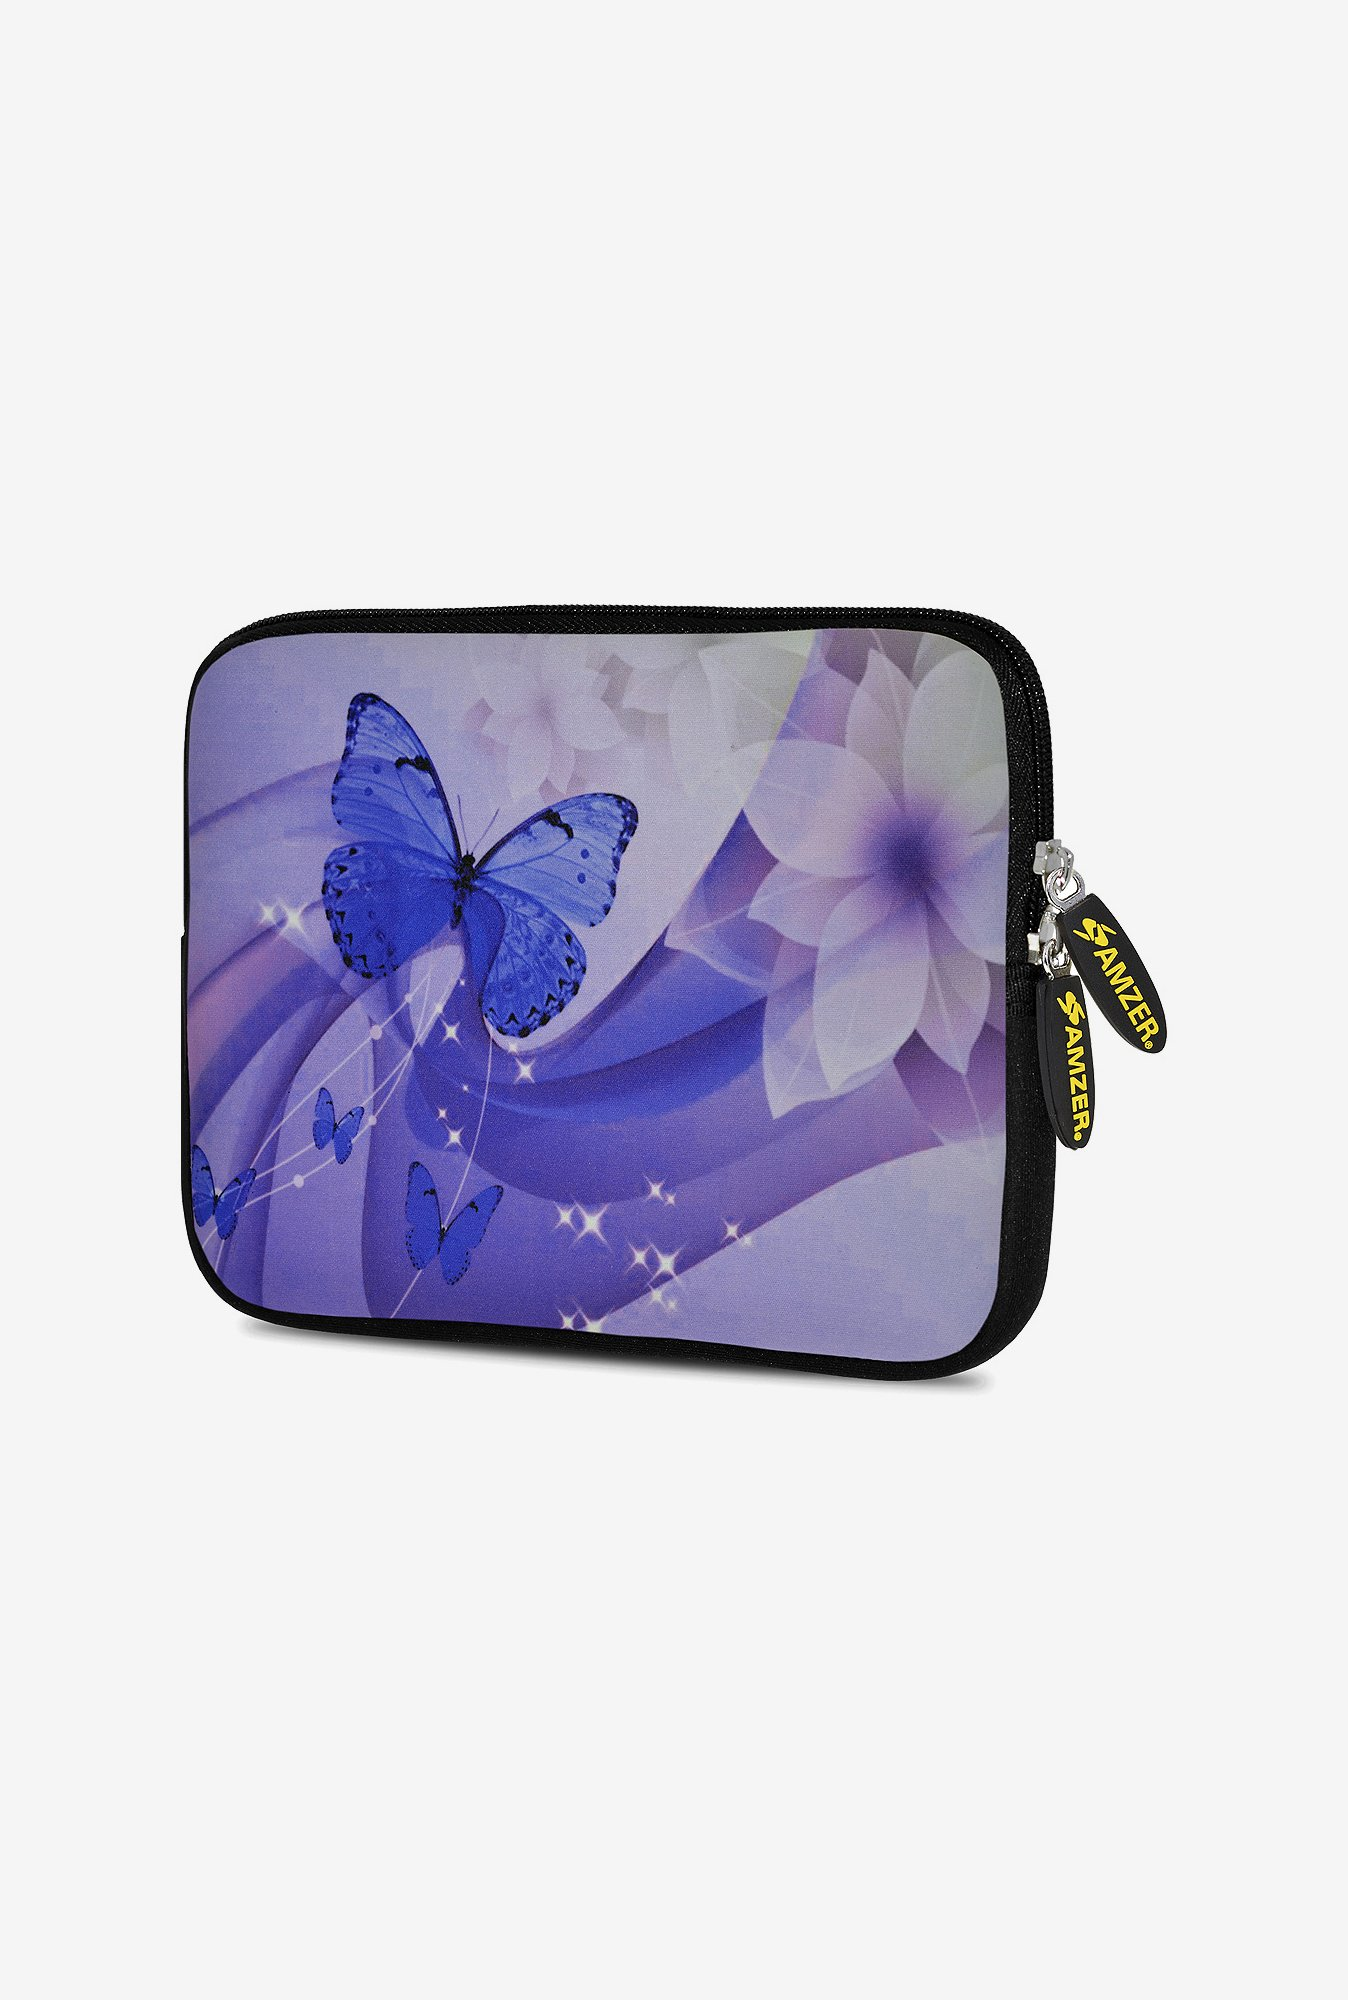 Amzer 7.75 Inch Neoprene Sleeve - Butterfly Swish